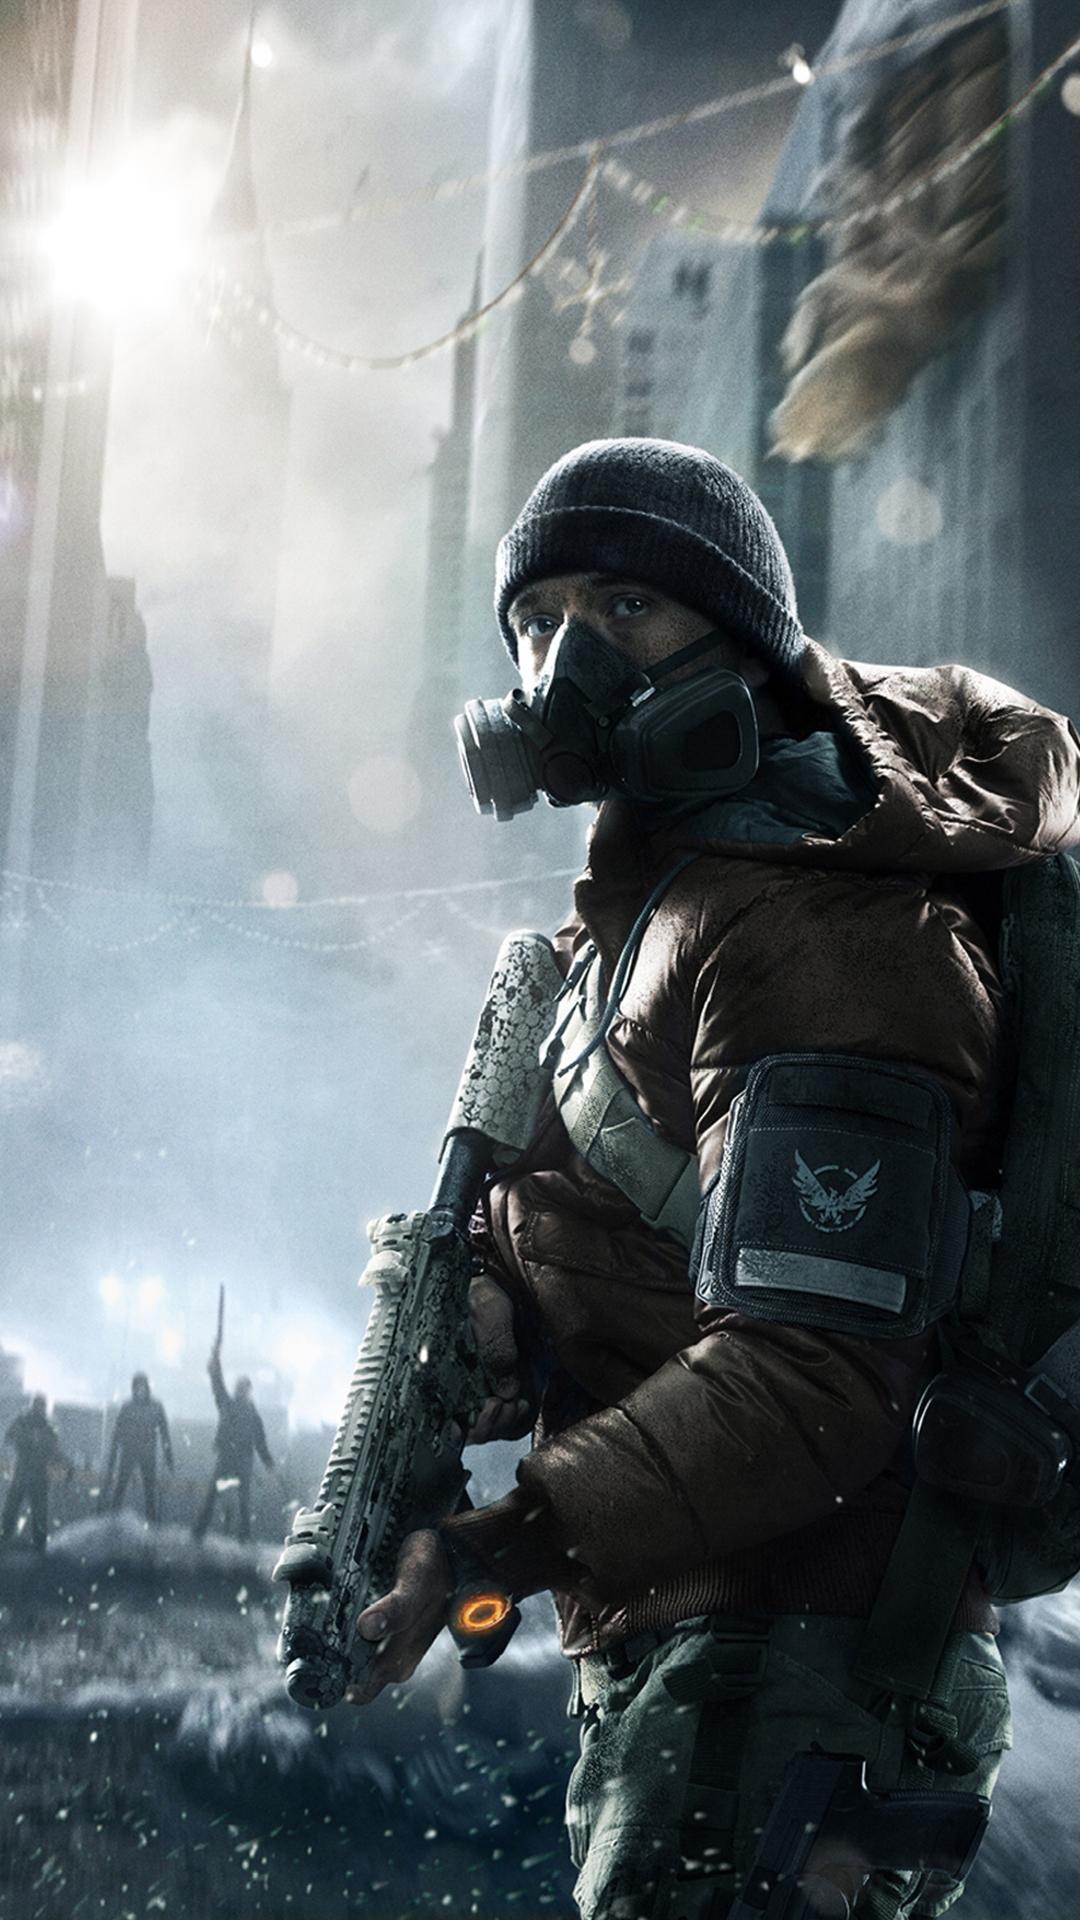 Download The Division Phone Wallpaper